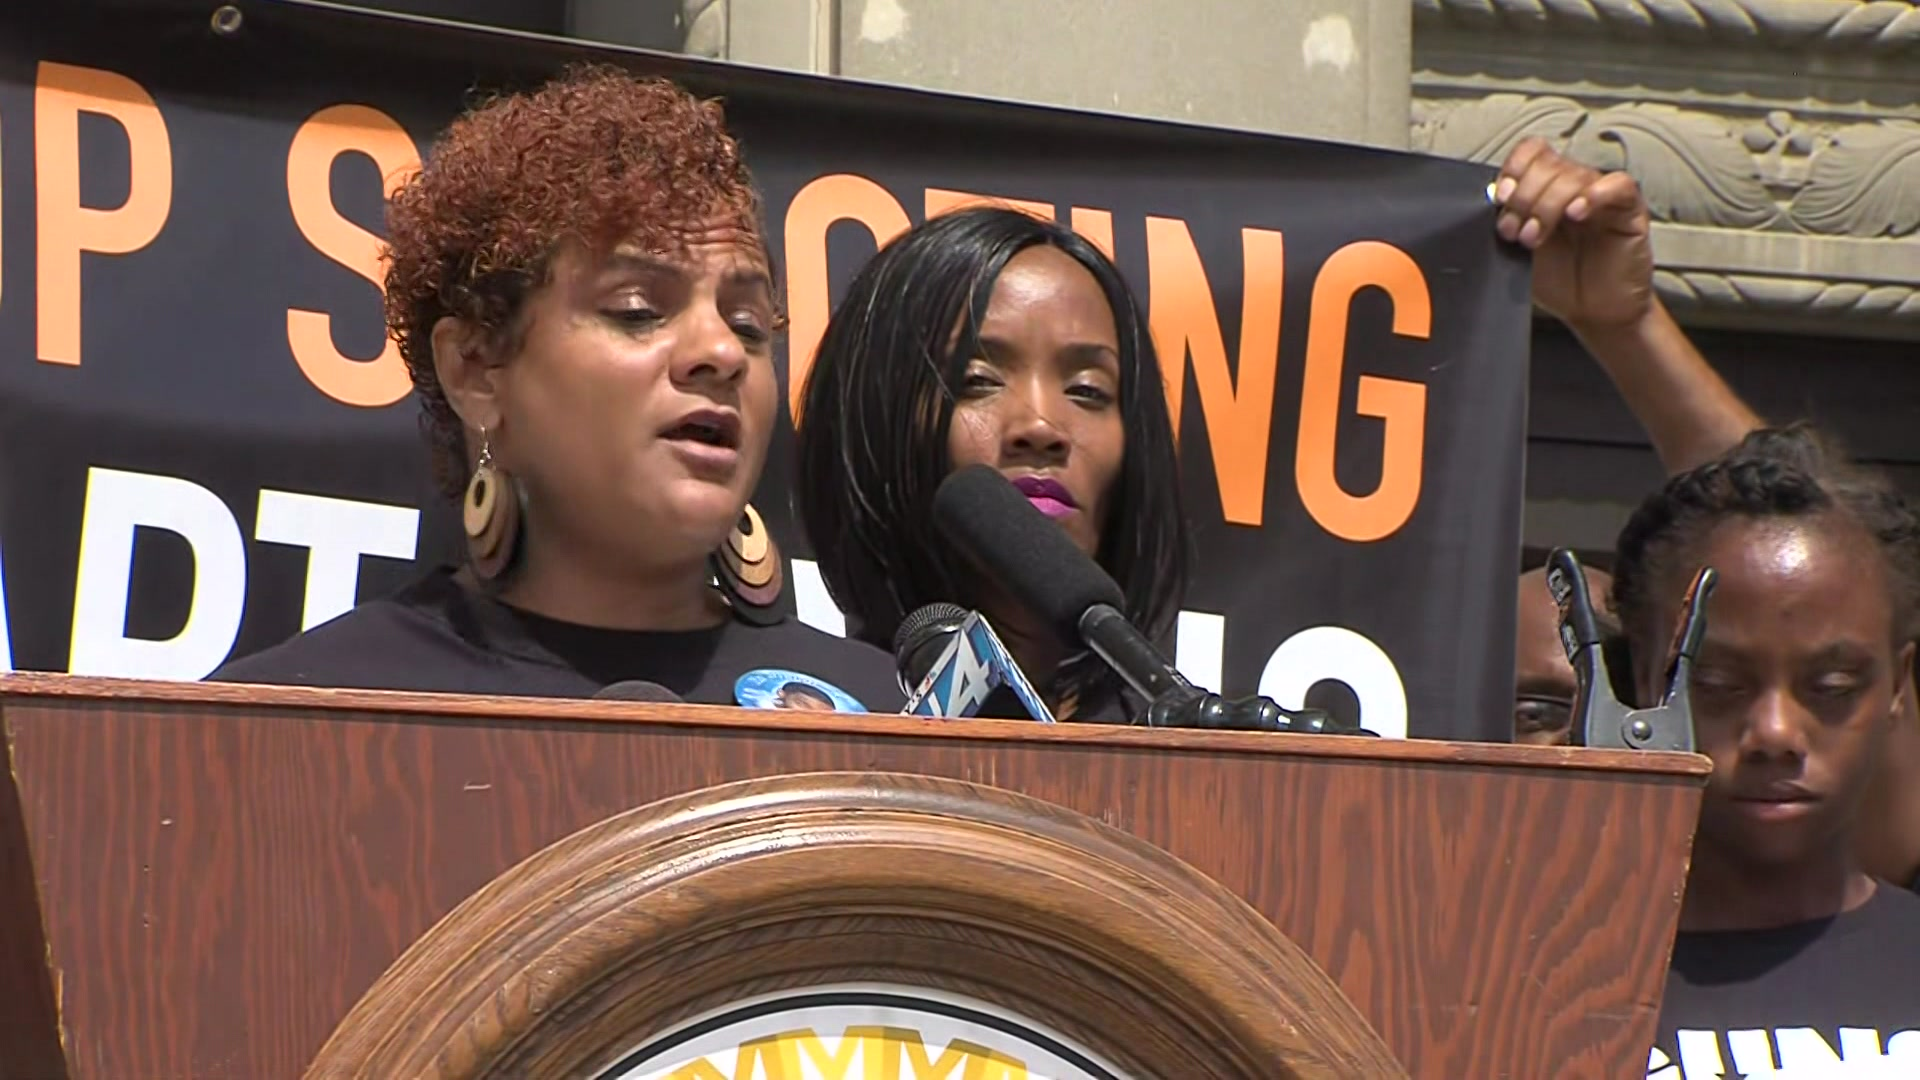 Mothers of gun violence victims speak outside Milwaukee County courthouse